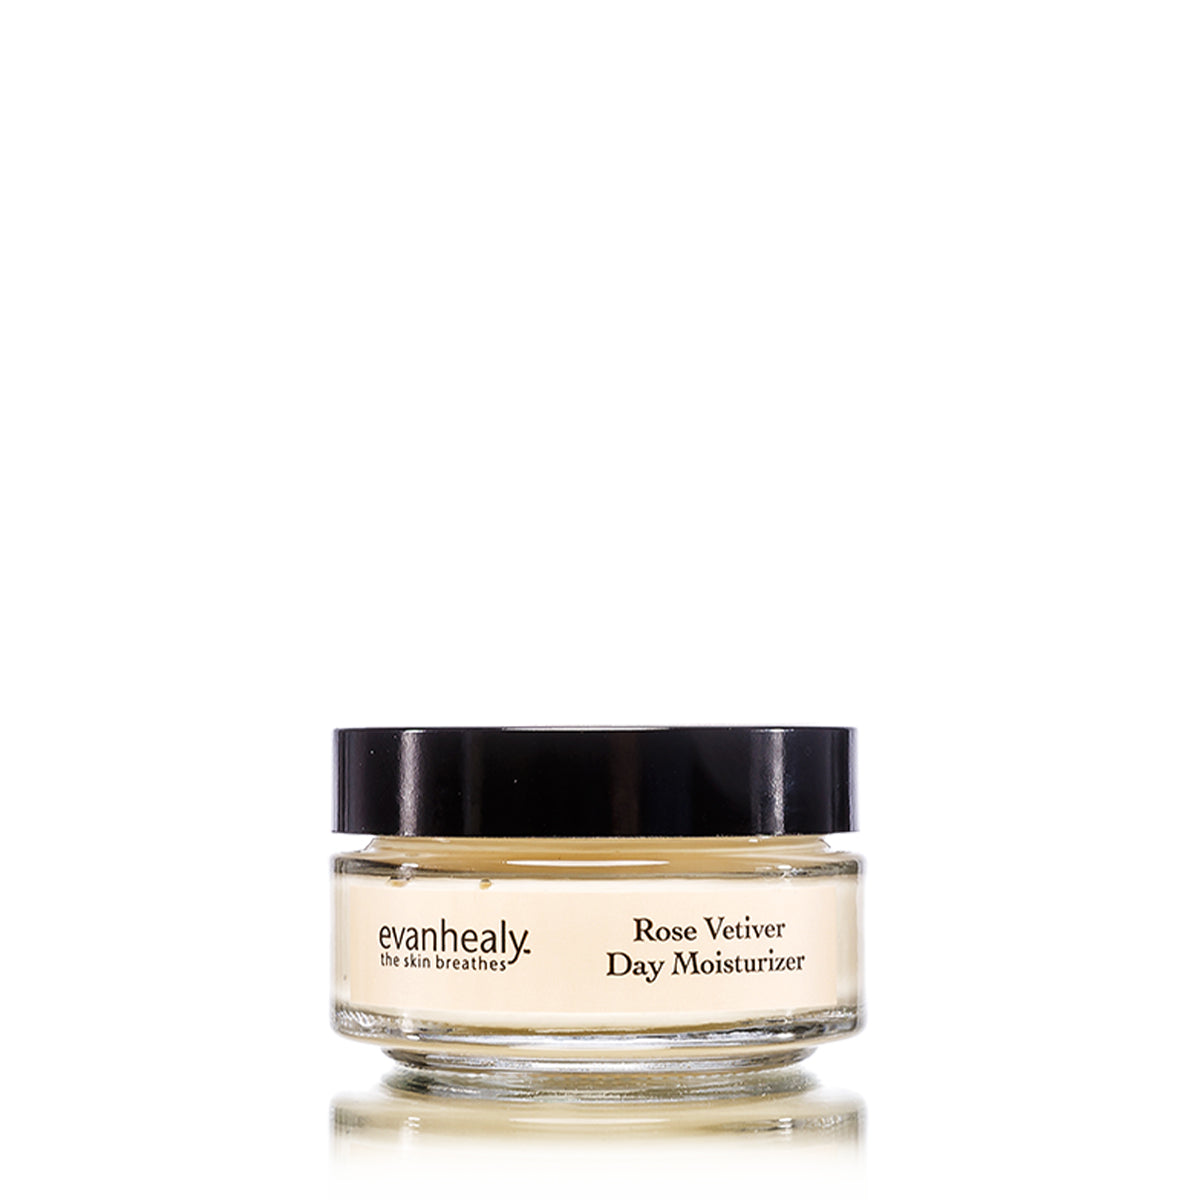 Rose Vetiver Day Moisturizer